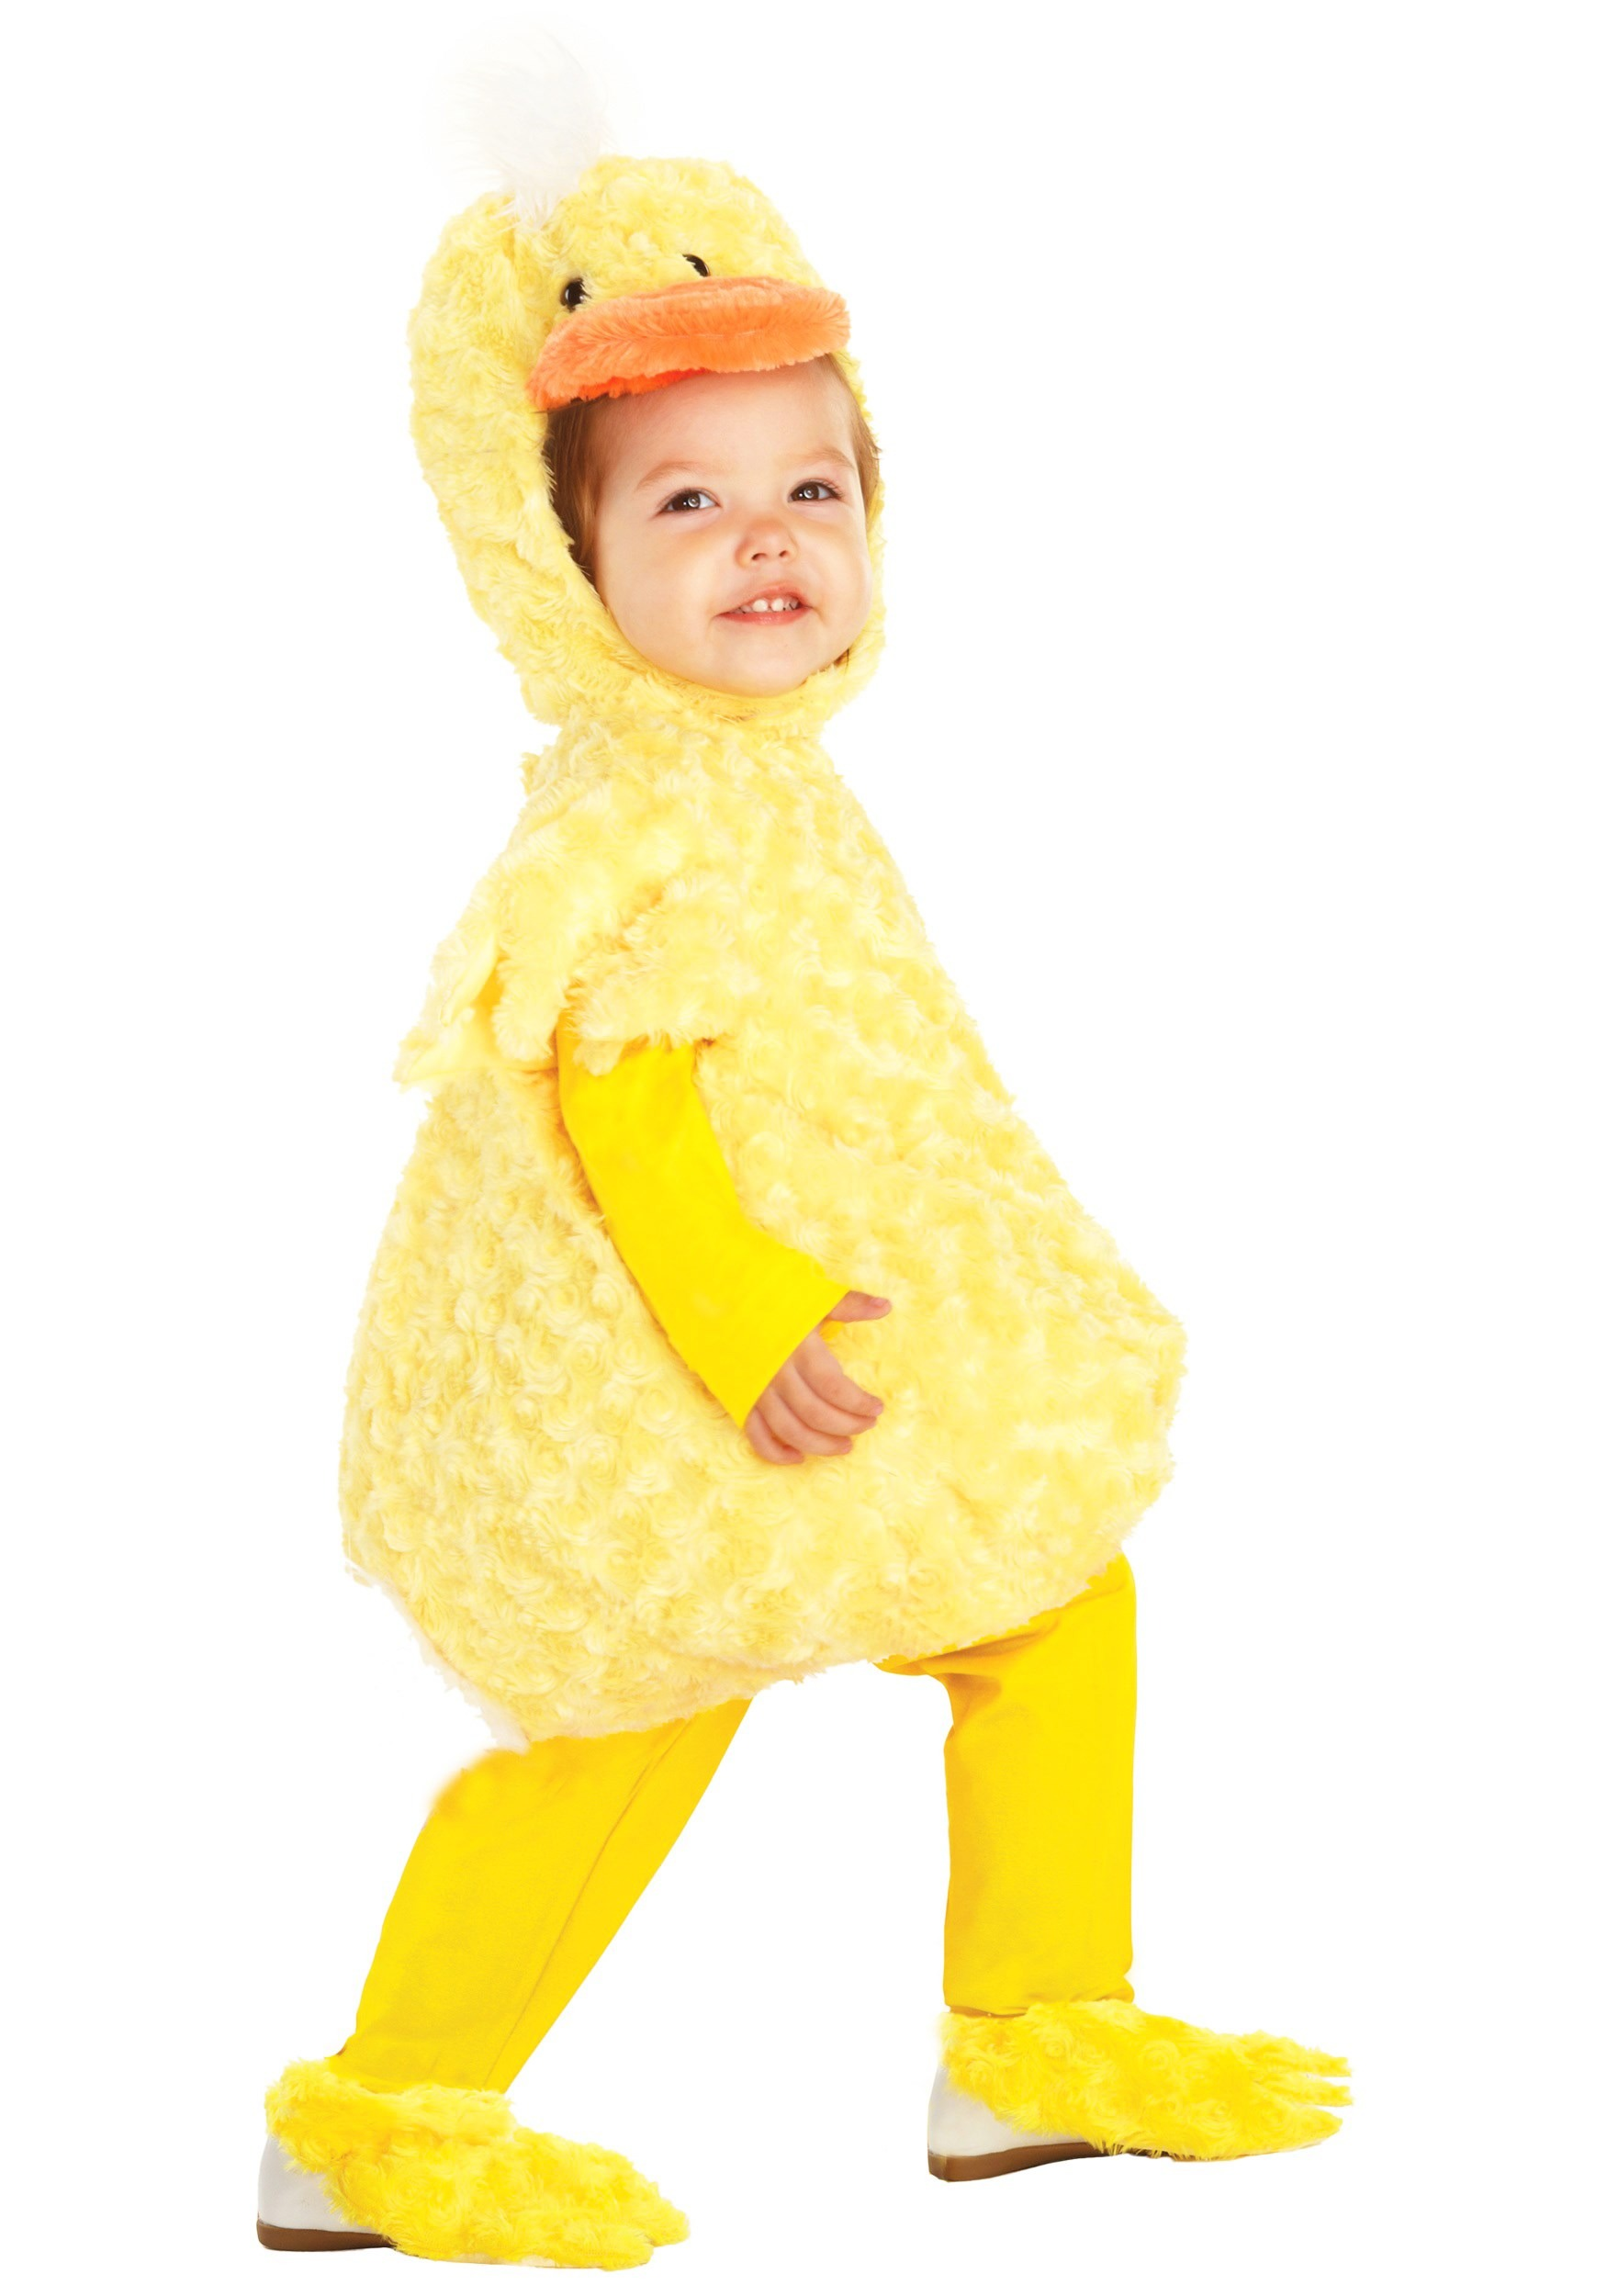 Toddler Fluffy Duck Costume  sc 1 st  Halloween Costume & Toddler Fluffy Duck Costume - Kidsu0027 Baby Animal Costume Ideas